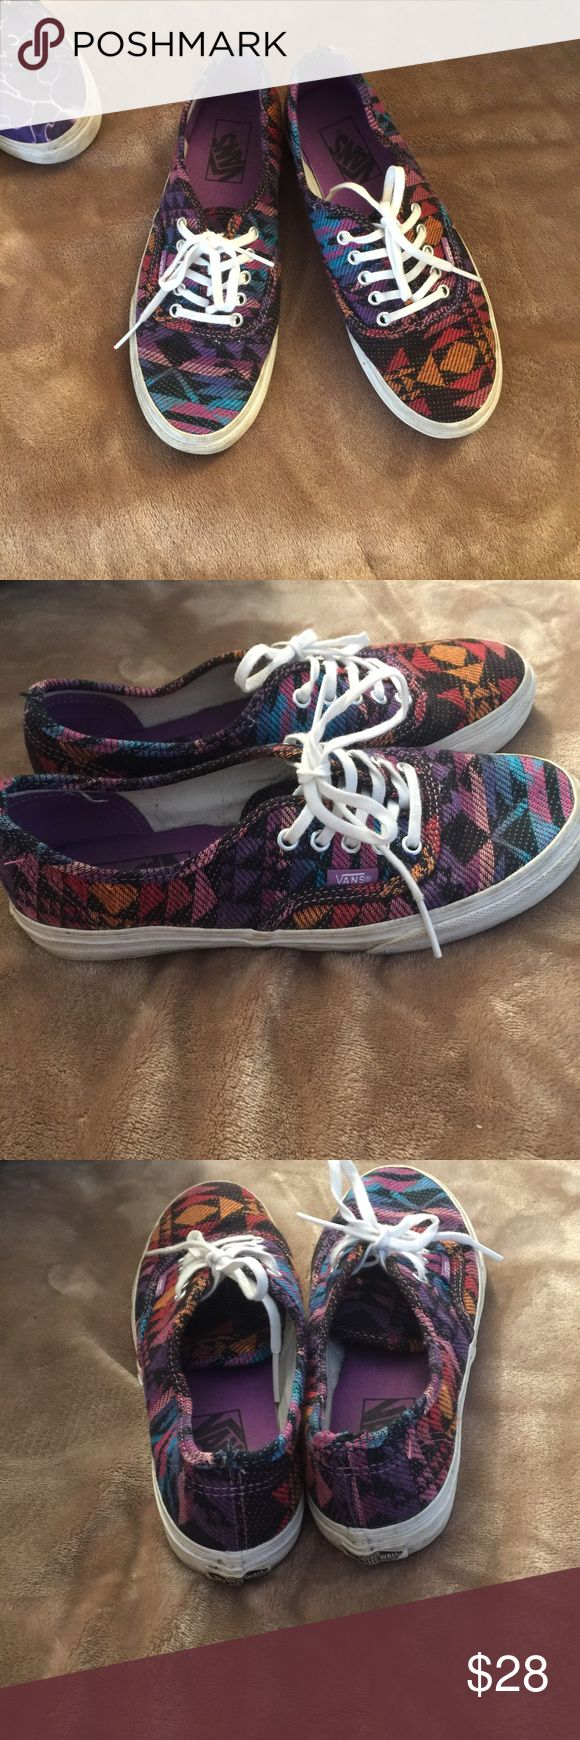 Sale 🎉 Vans shoes Aztec vans -- size 7 🤙🏼 Oranges, blues, purples, & black!  Good condition, just needs a cleaned up in the white part, only worn a few times.  (Most shoes posted only worn one - four times) Bundle any two pairs of shoes get $11 off! 💕 Vans Shoes Sneakers